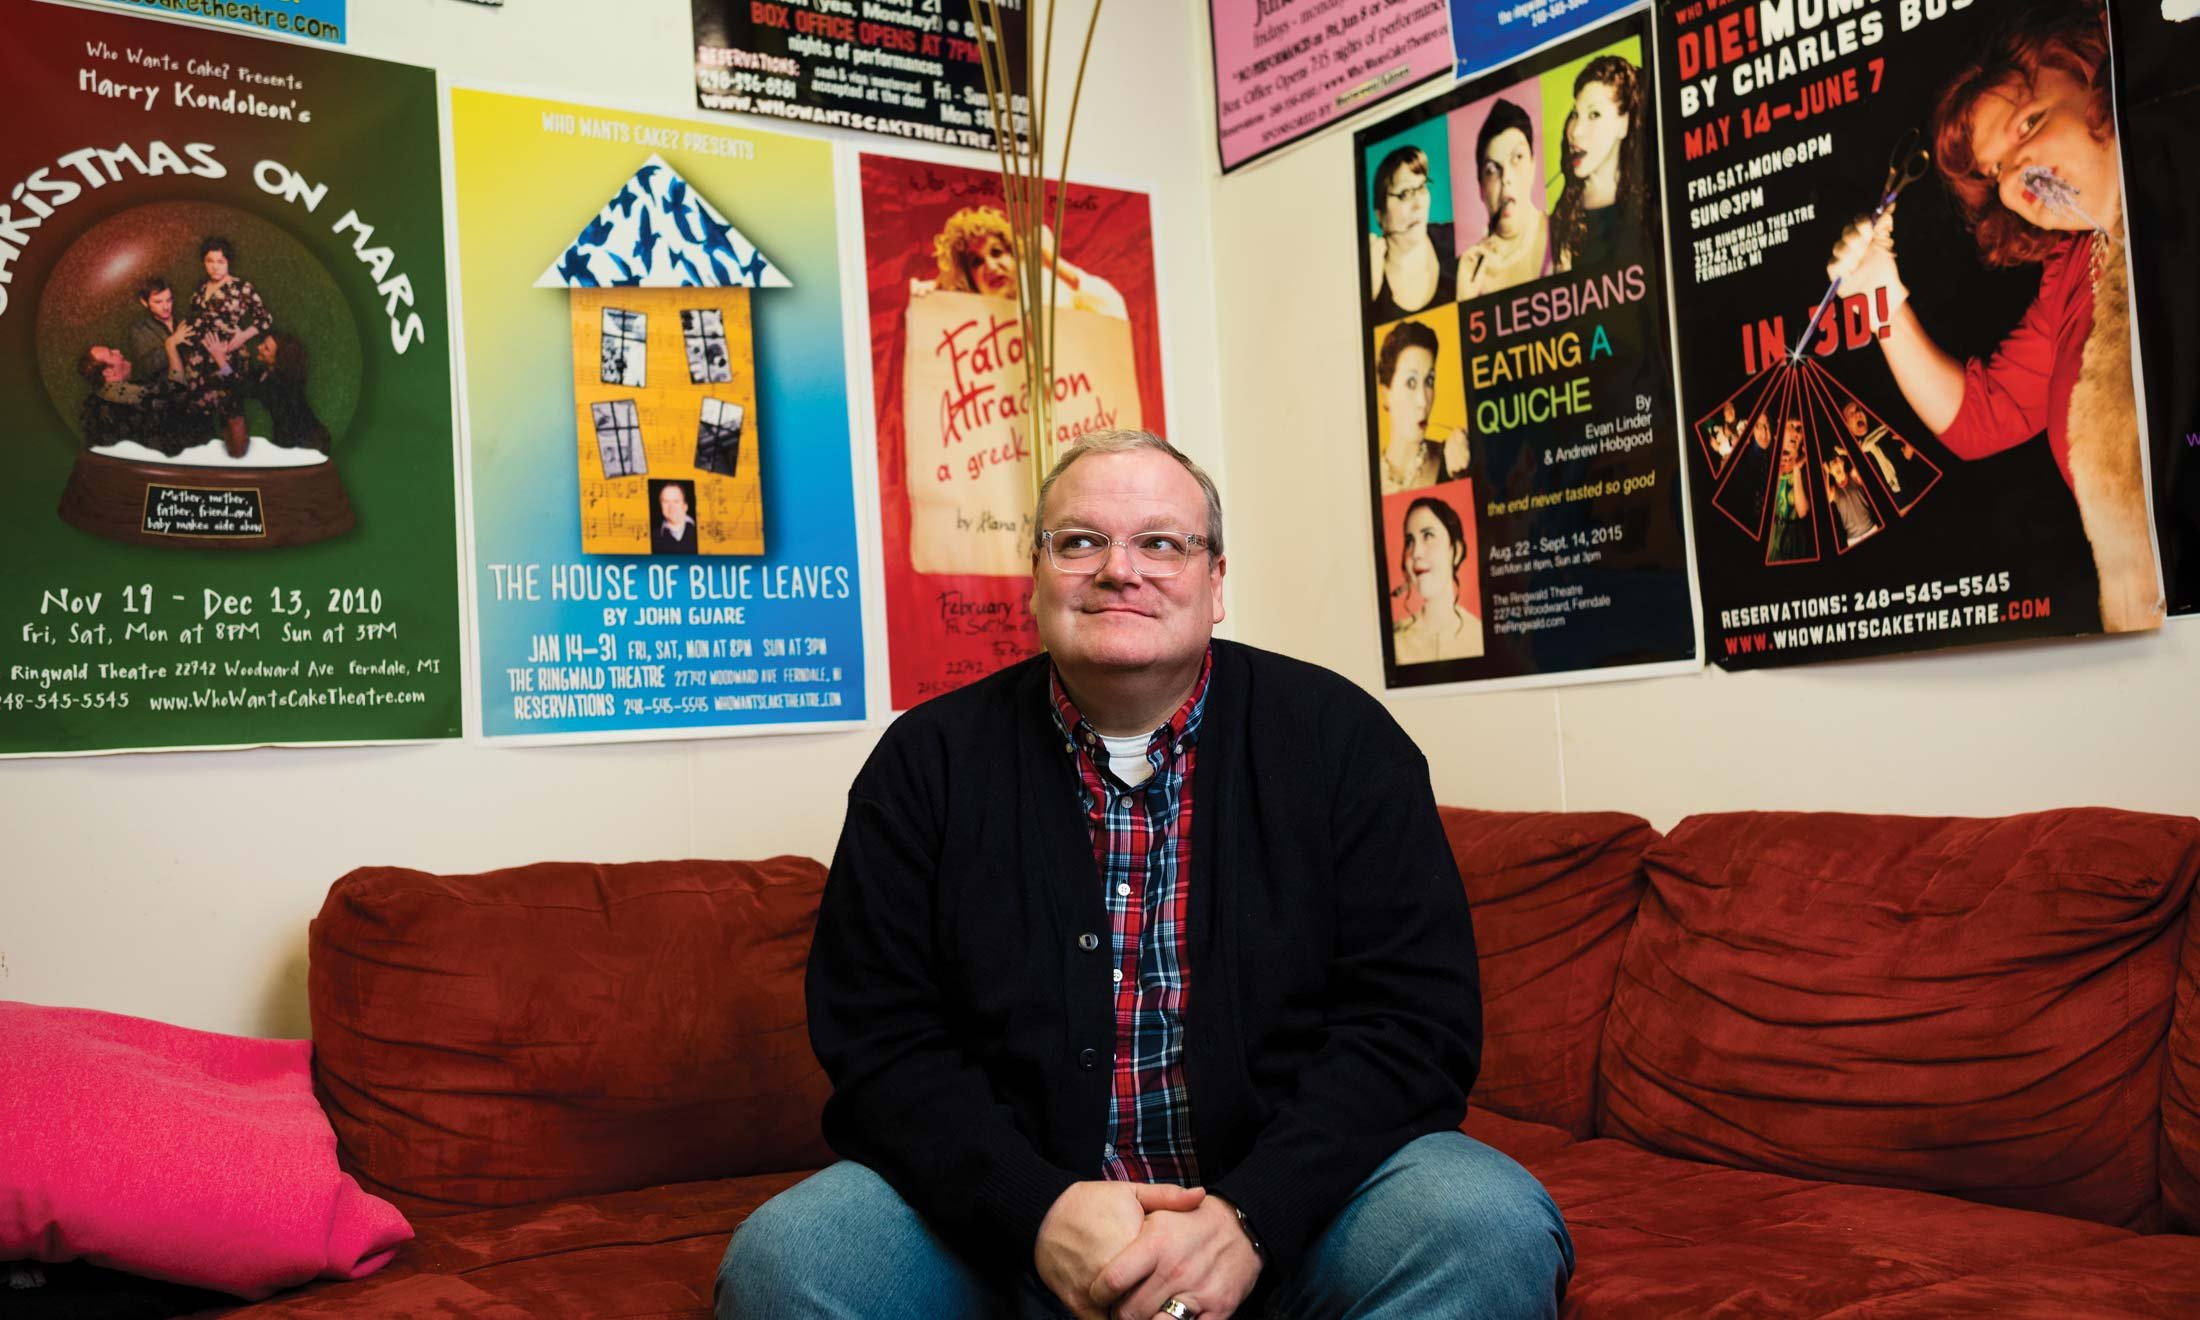 Backstage at The Ringwald Theatre in Ferndale, Michigan, Joe Bailey sits on a red couch in his office. Many posters from his shows line the walls. Wearing a black jacket, jeans and a flannel shirt.